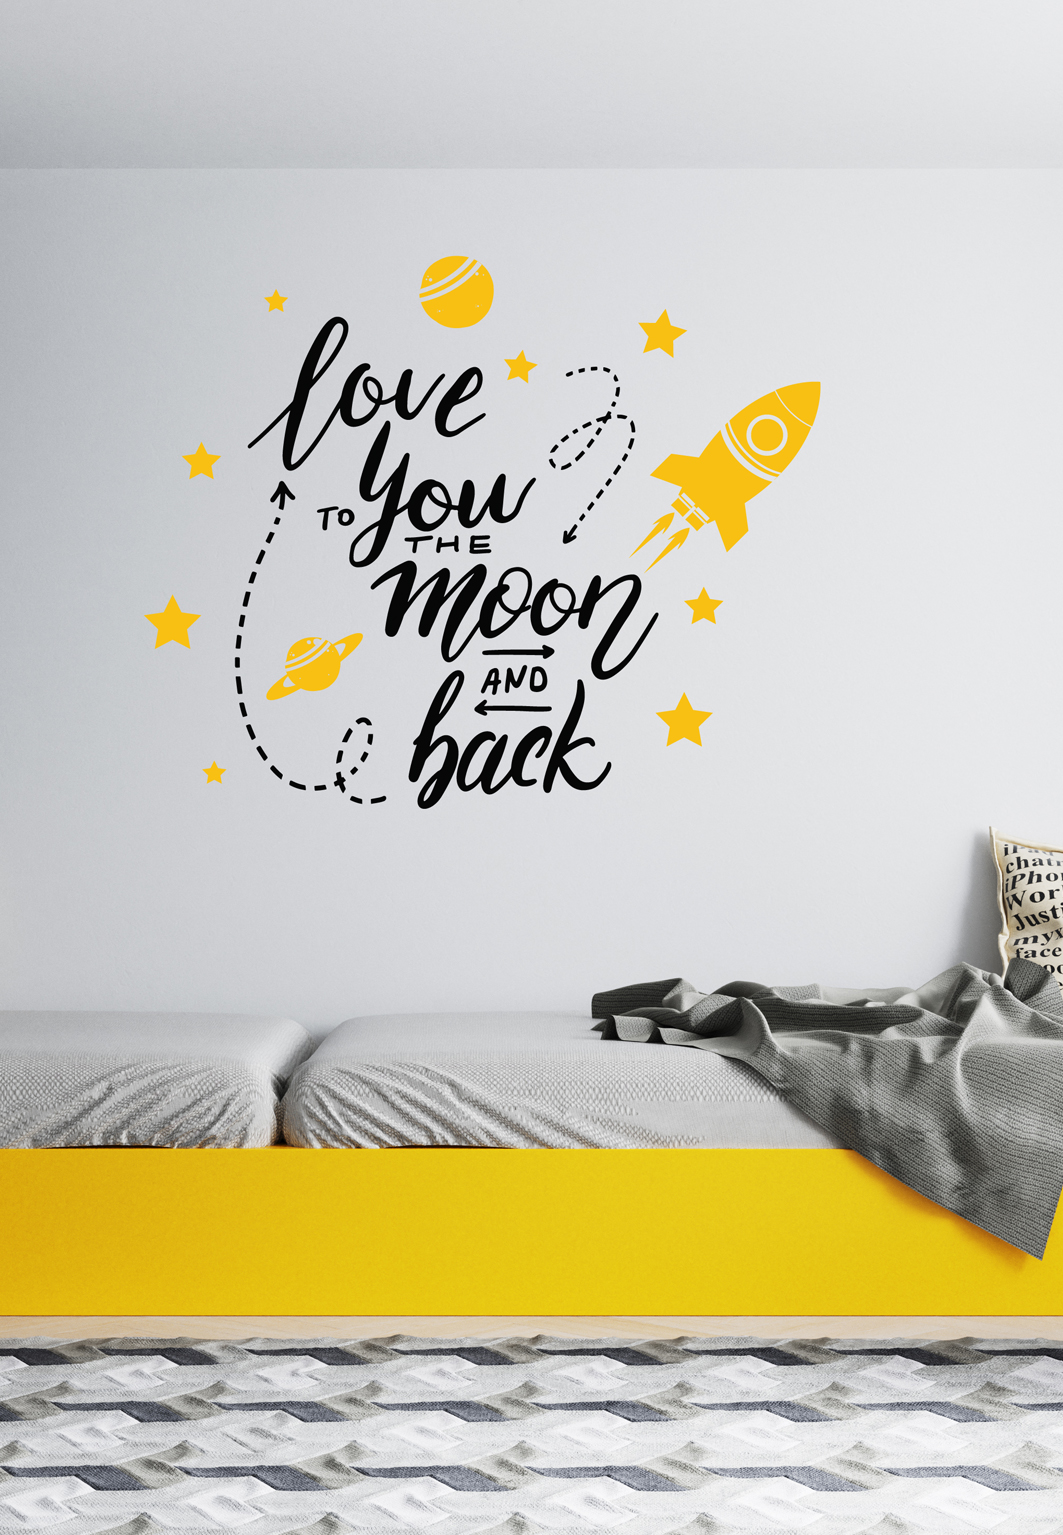 מדבקת קיר - Love you to the moon and back